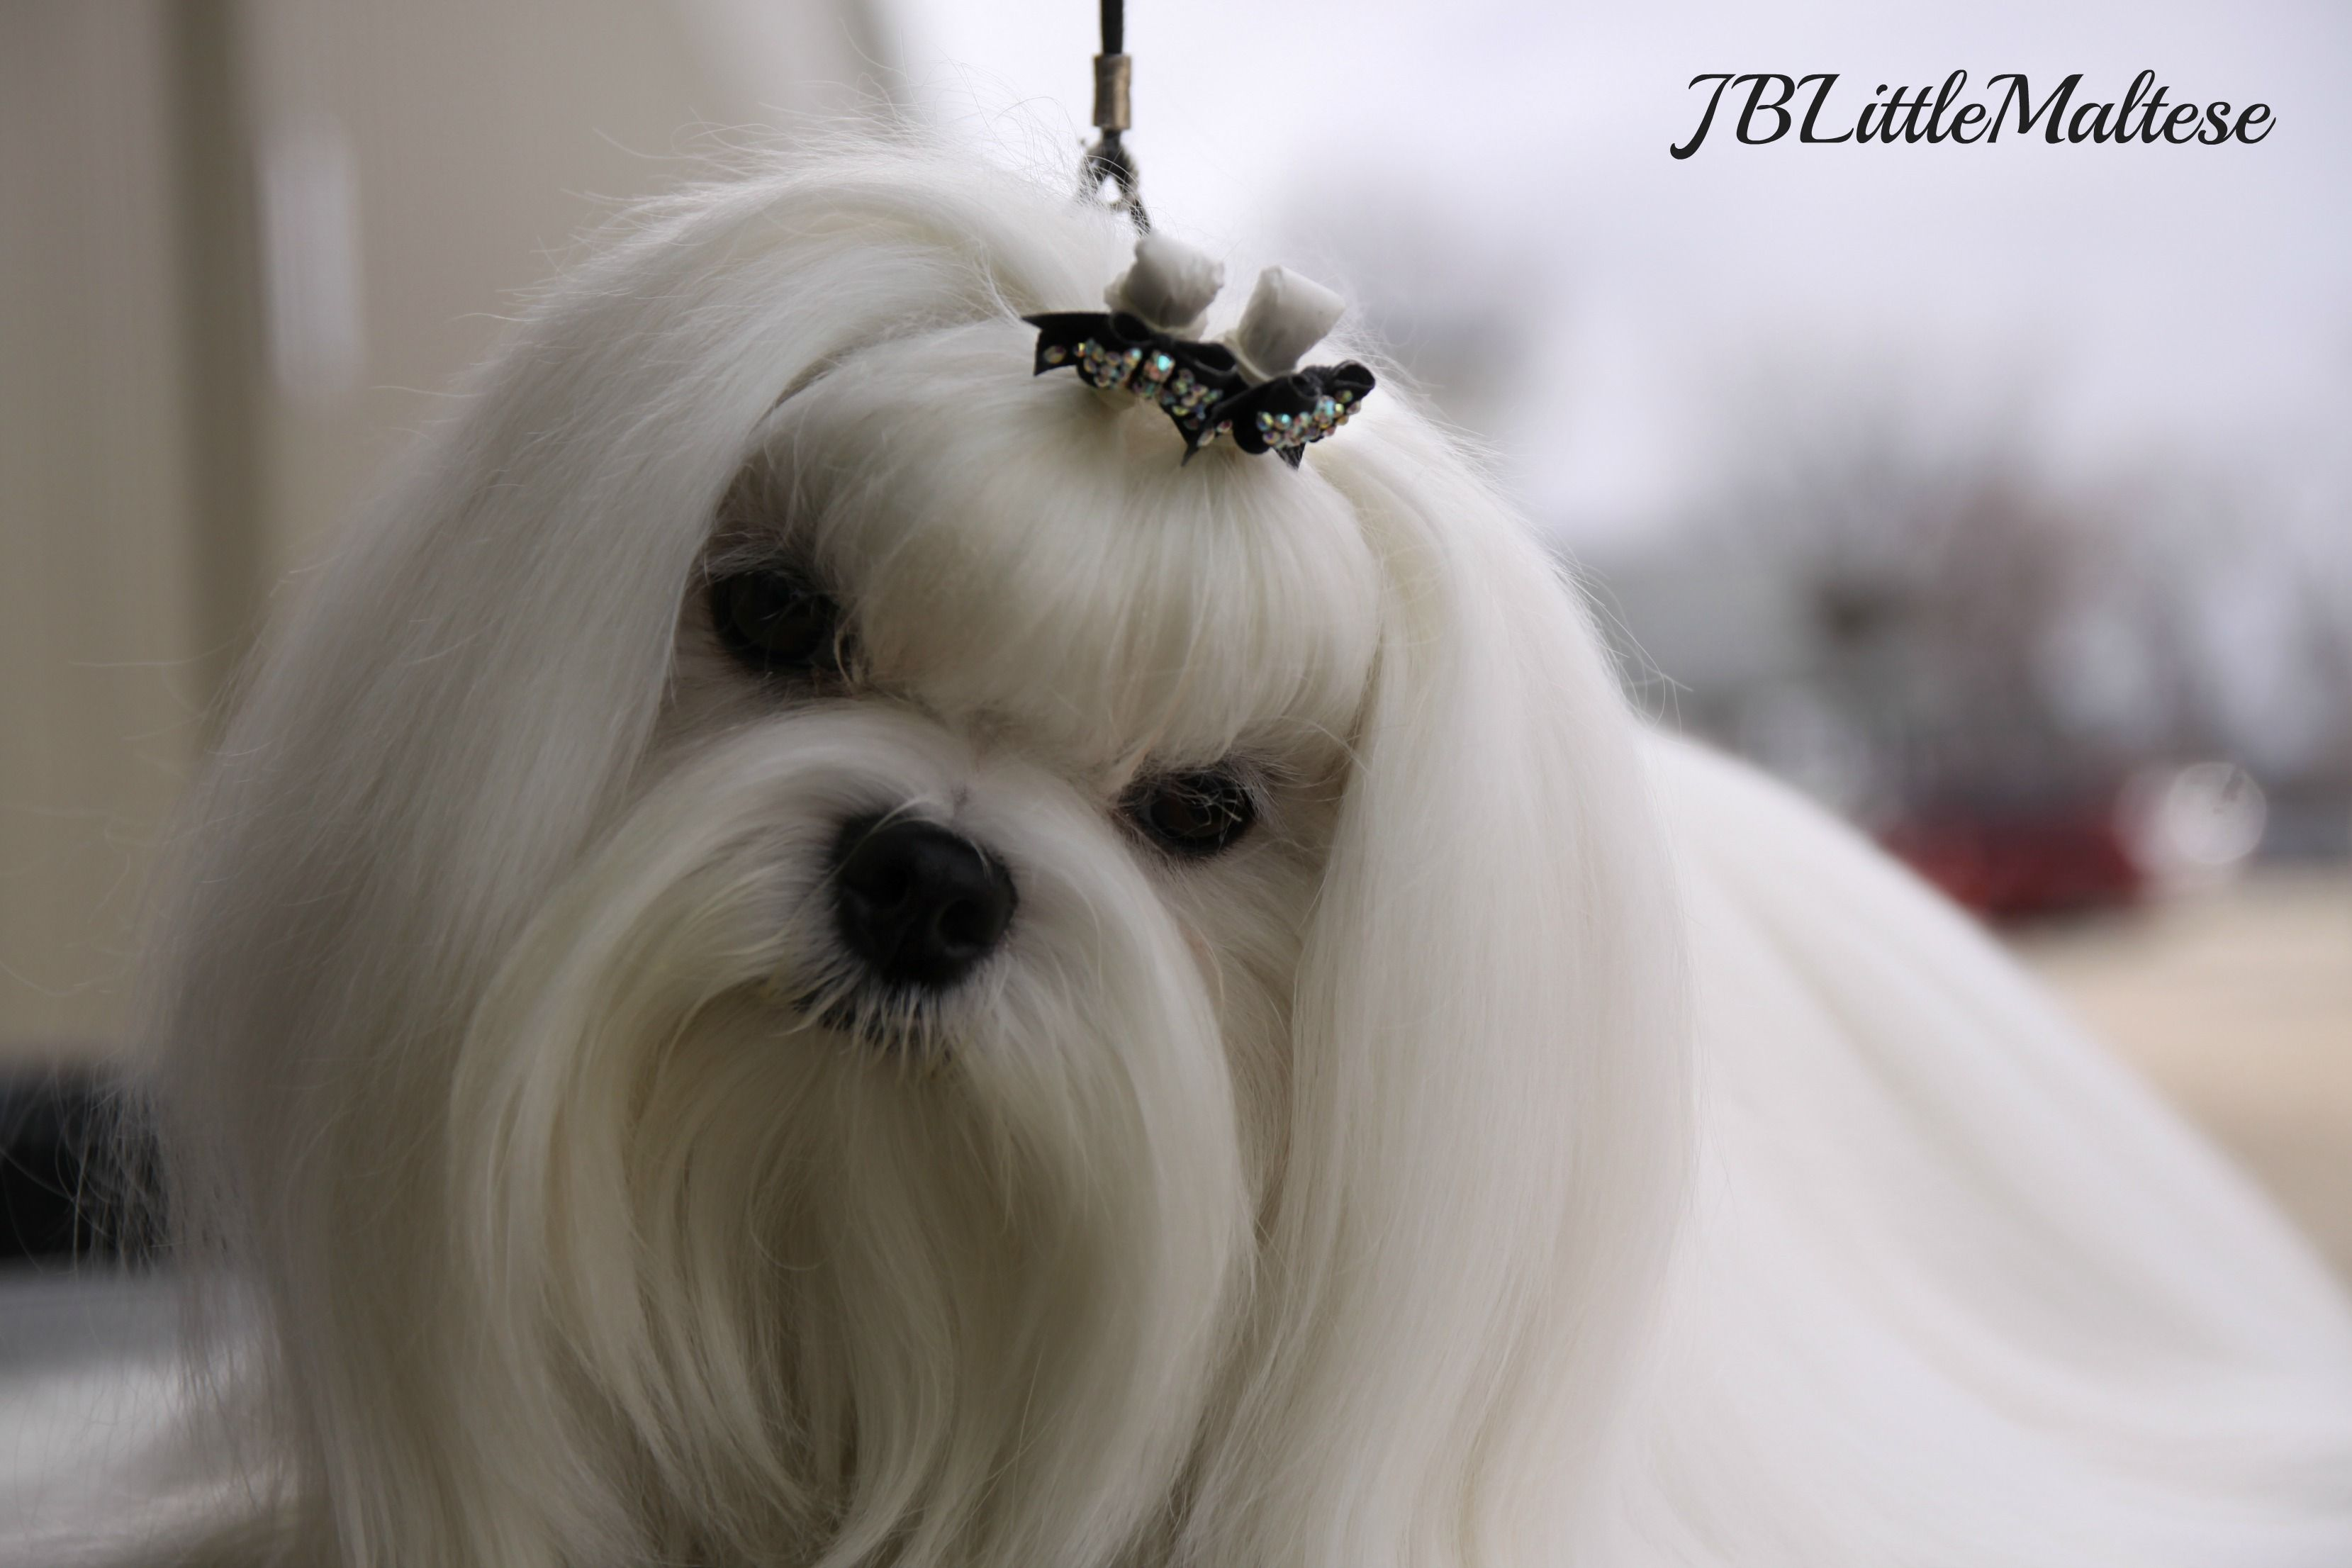 Champion Maltese Male Can Ch Amplua Bow Wow Purebred Show Maltese Of Canada At Jblittlemaltese Reg D Www J Teacup Puppies Maltese Maltese Puppy Maltese Dogs